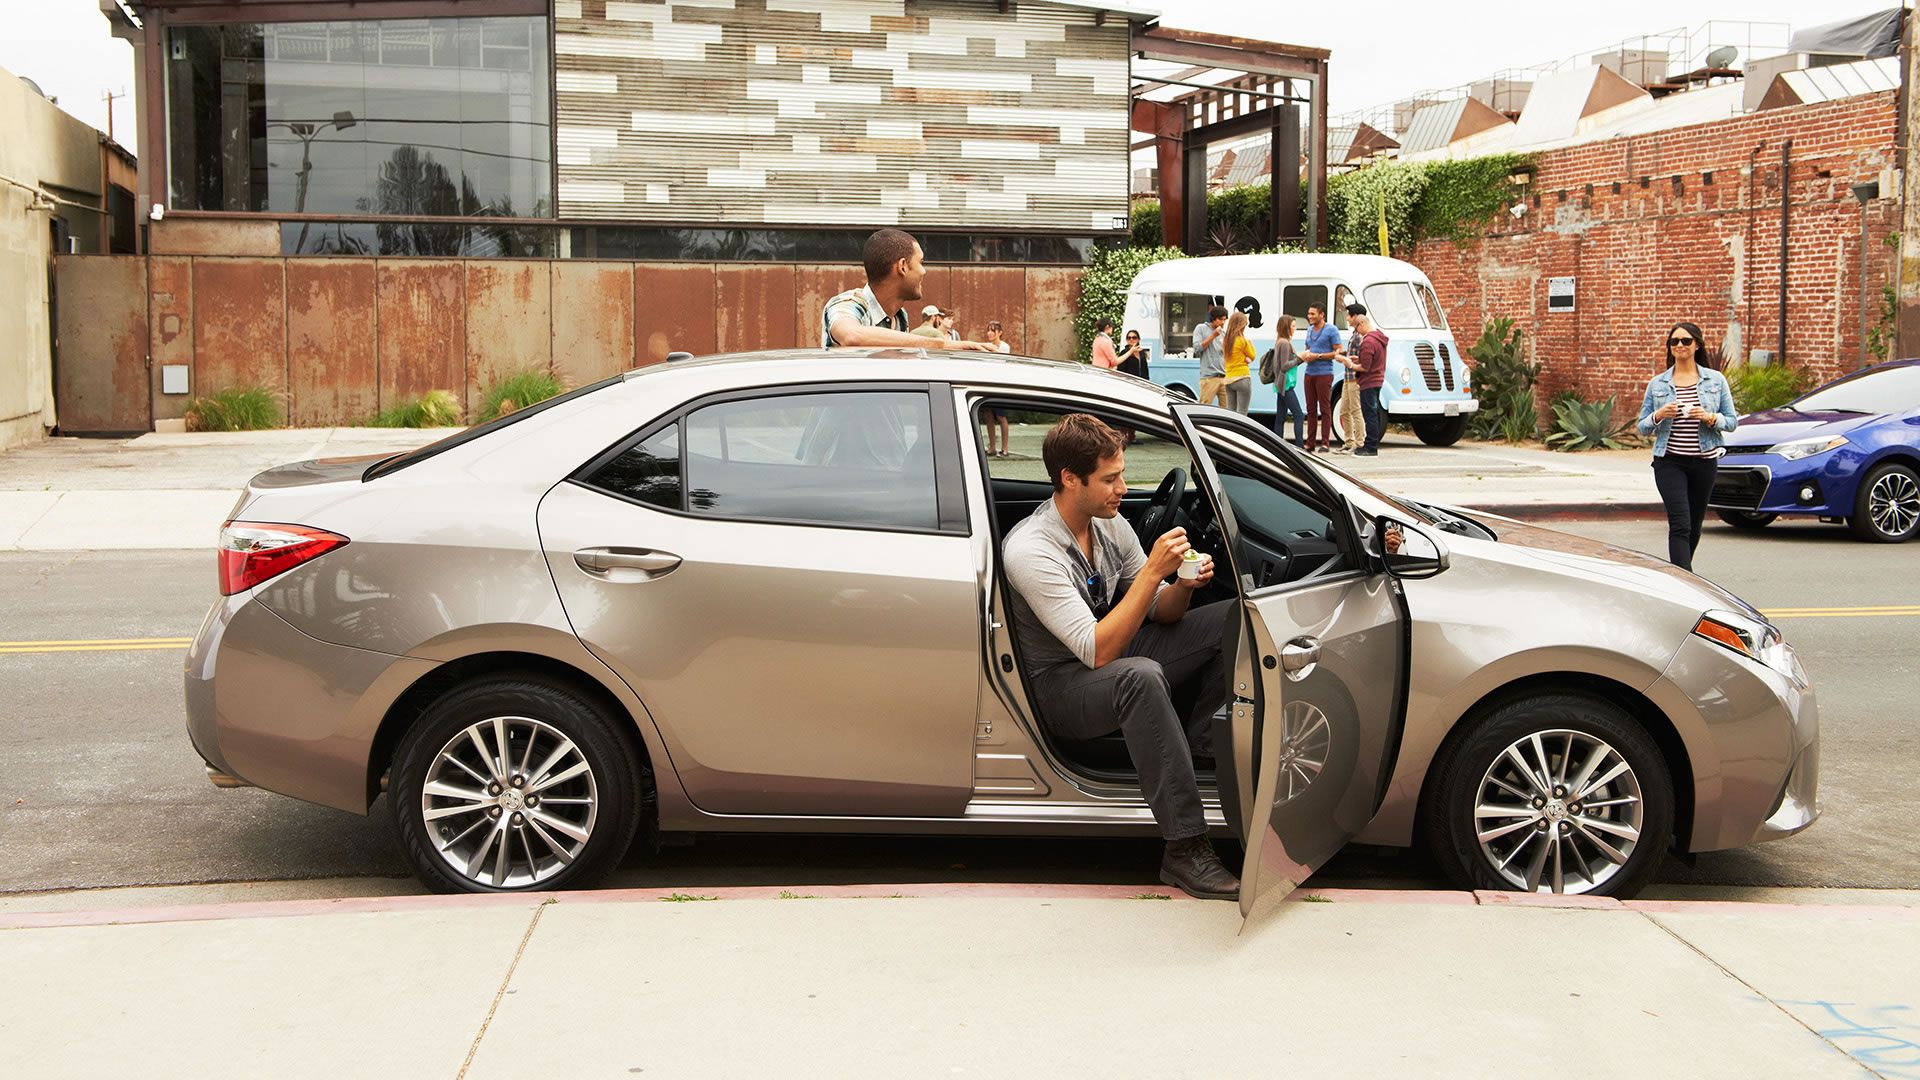 hight resolution of metallic arrive with a style toyota dealers toyota corolla brown sugar cool cars